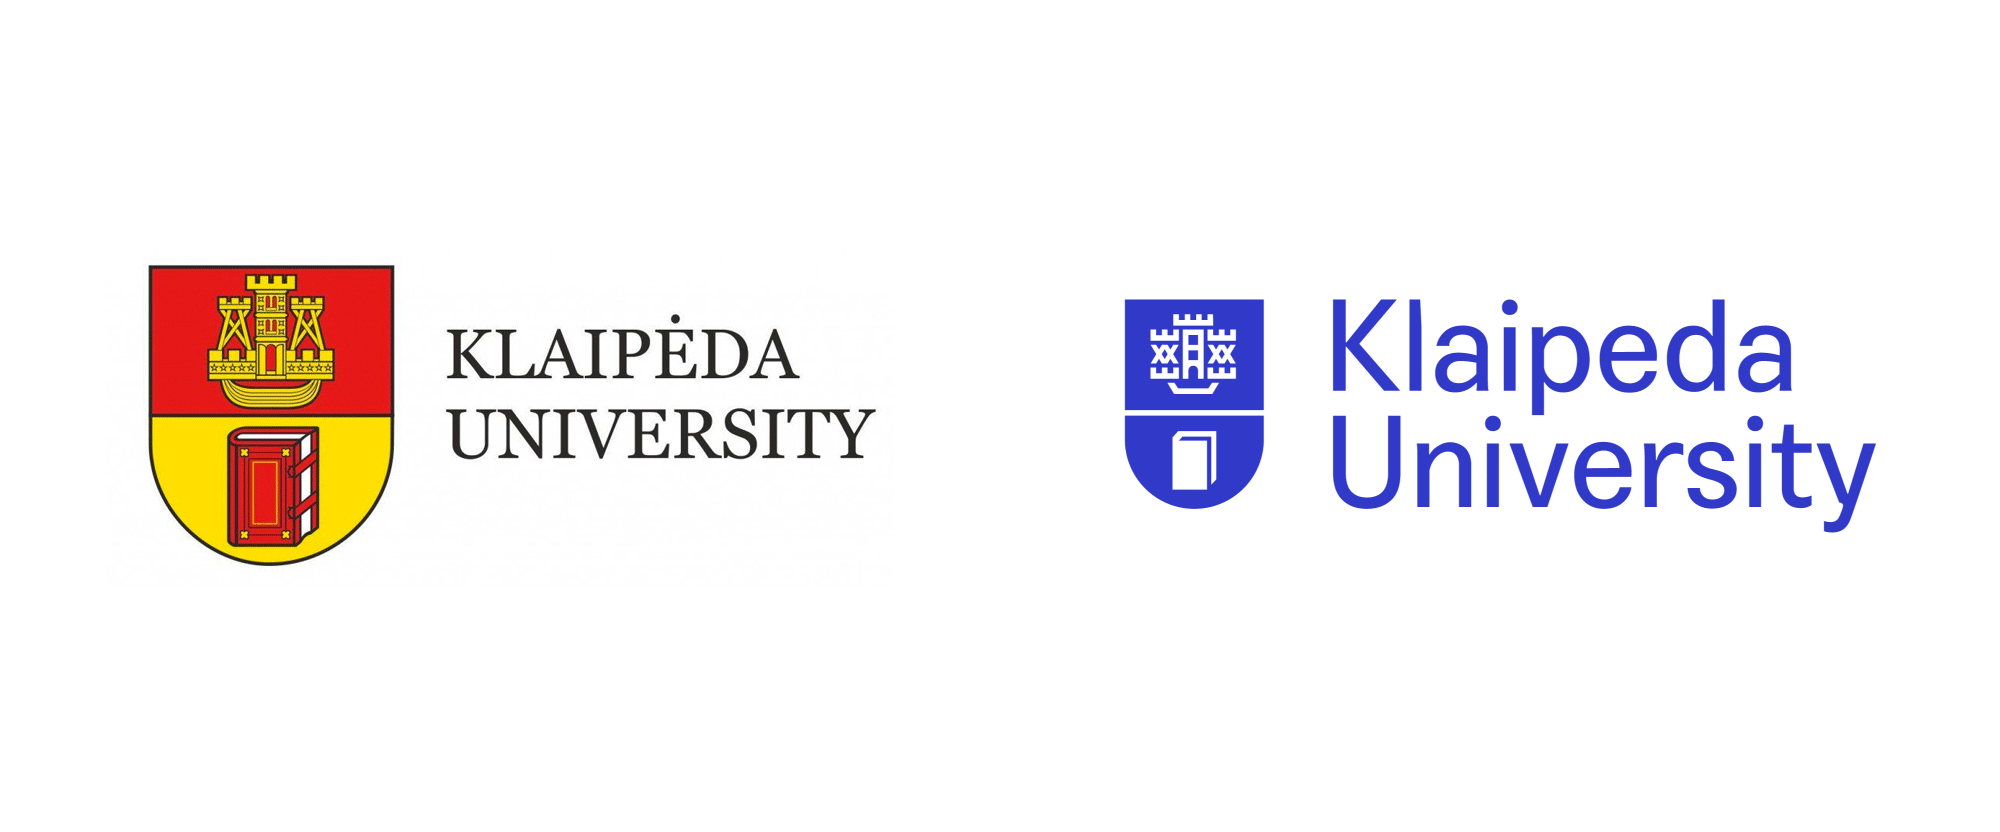 New Logo and Identity for Klaipeda University by Andstudio